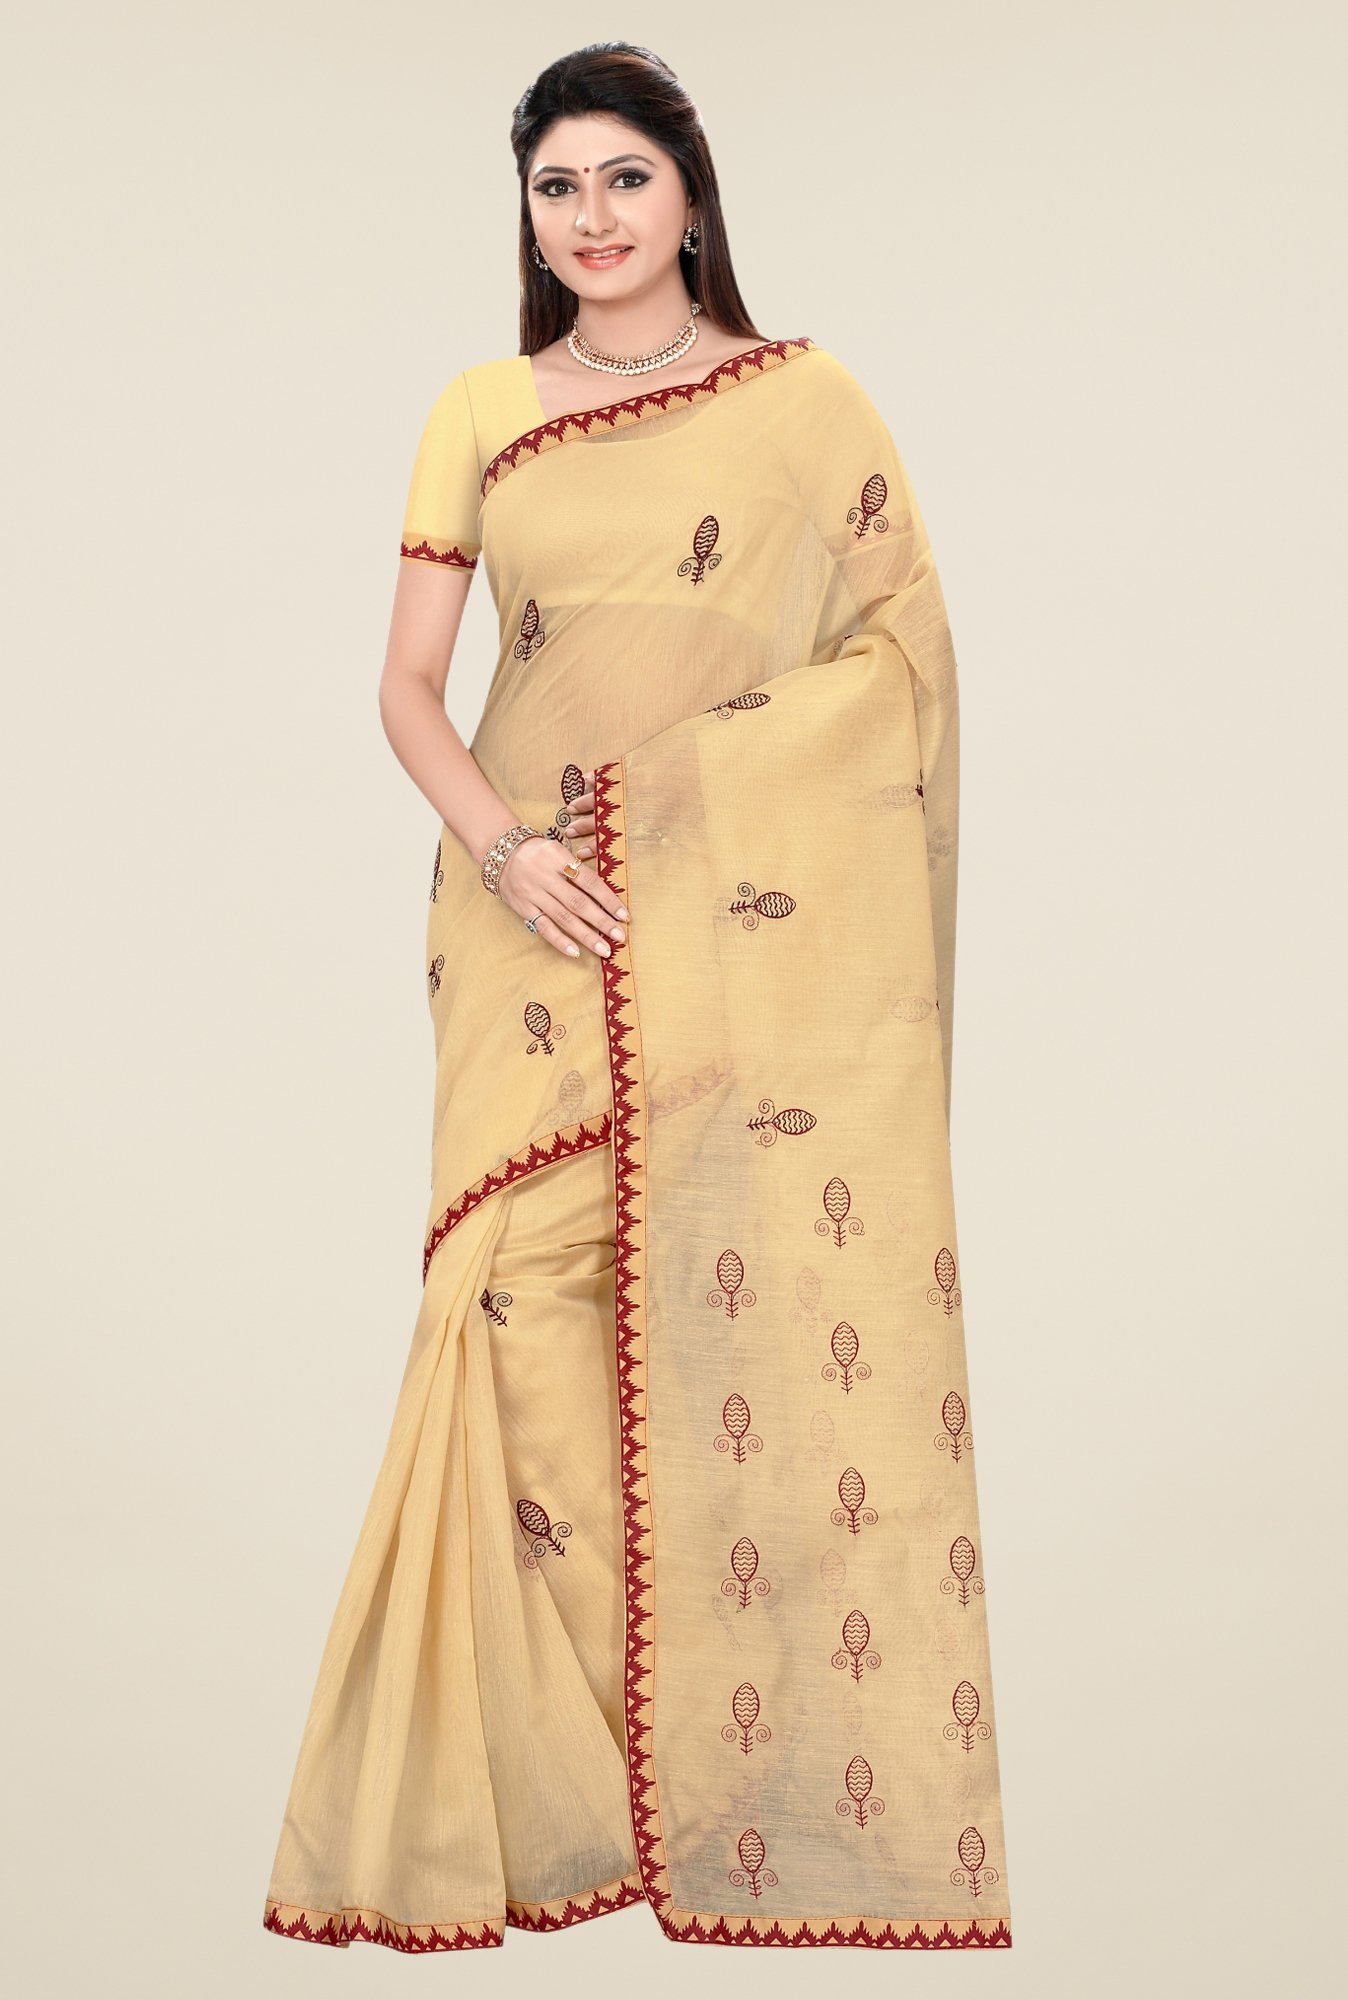 Triveni Beige & Red Embroidered Blended Cotton Saree